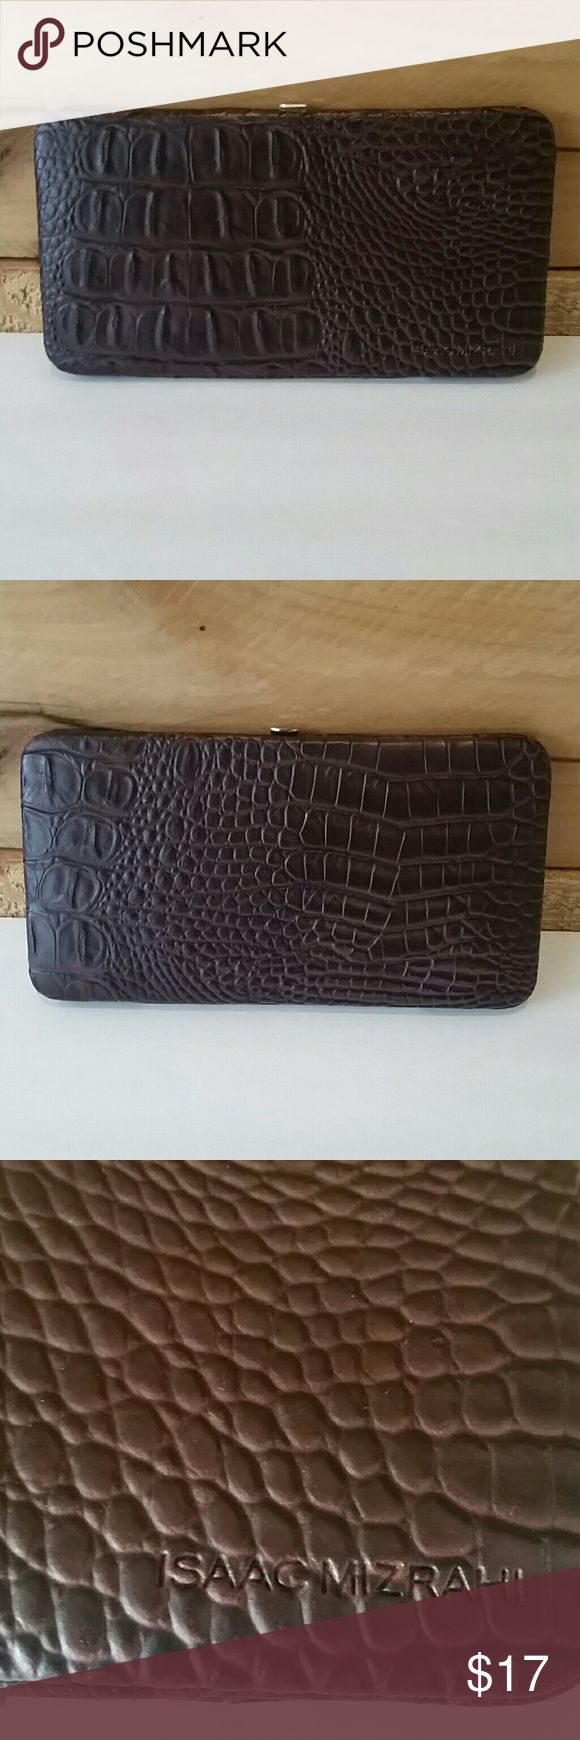 """NWOT Isaac Mizrahi faux alligator wallet NWOT Isaac Mizrahi faux alligator wallet in matte brown with hot pink interior. 3 pockets and numerous spots for cards. 3 3/4"""" tall, 7"""" wide. Issac Mizrahi Bags Wallets"""